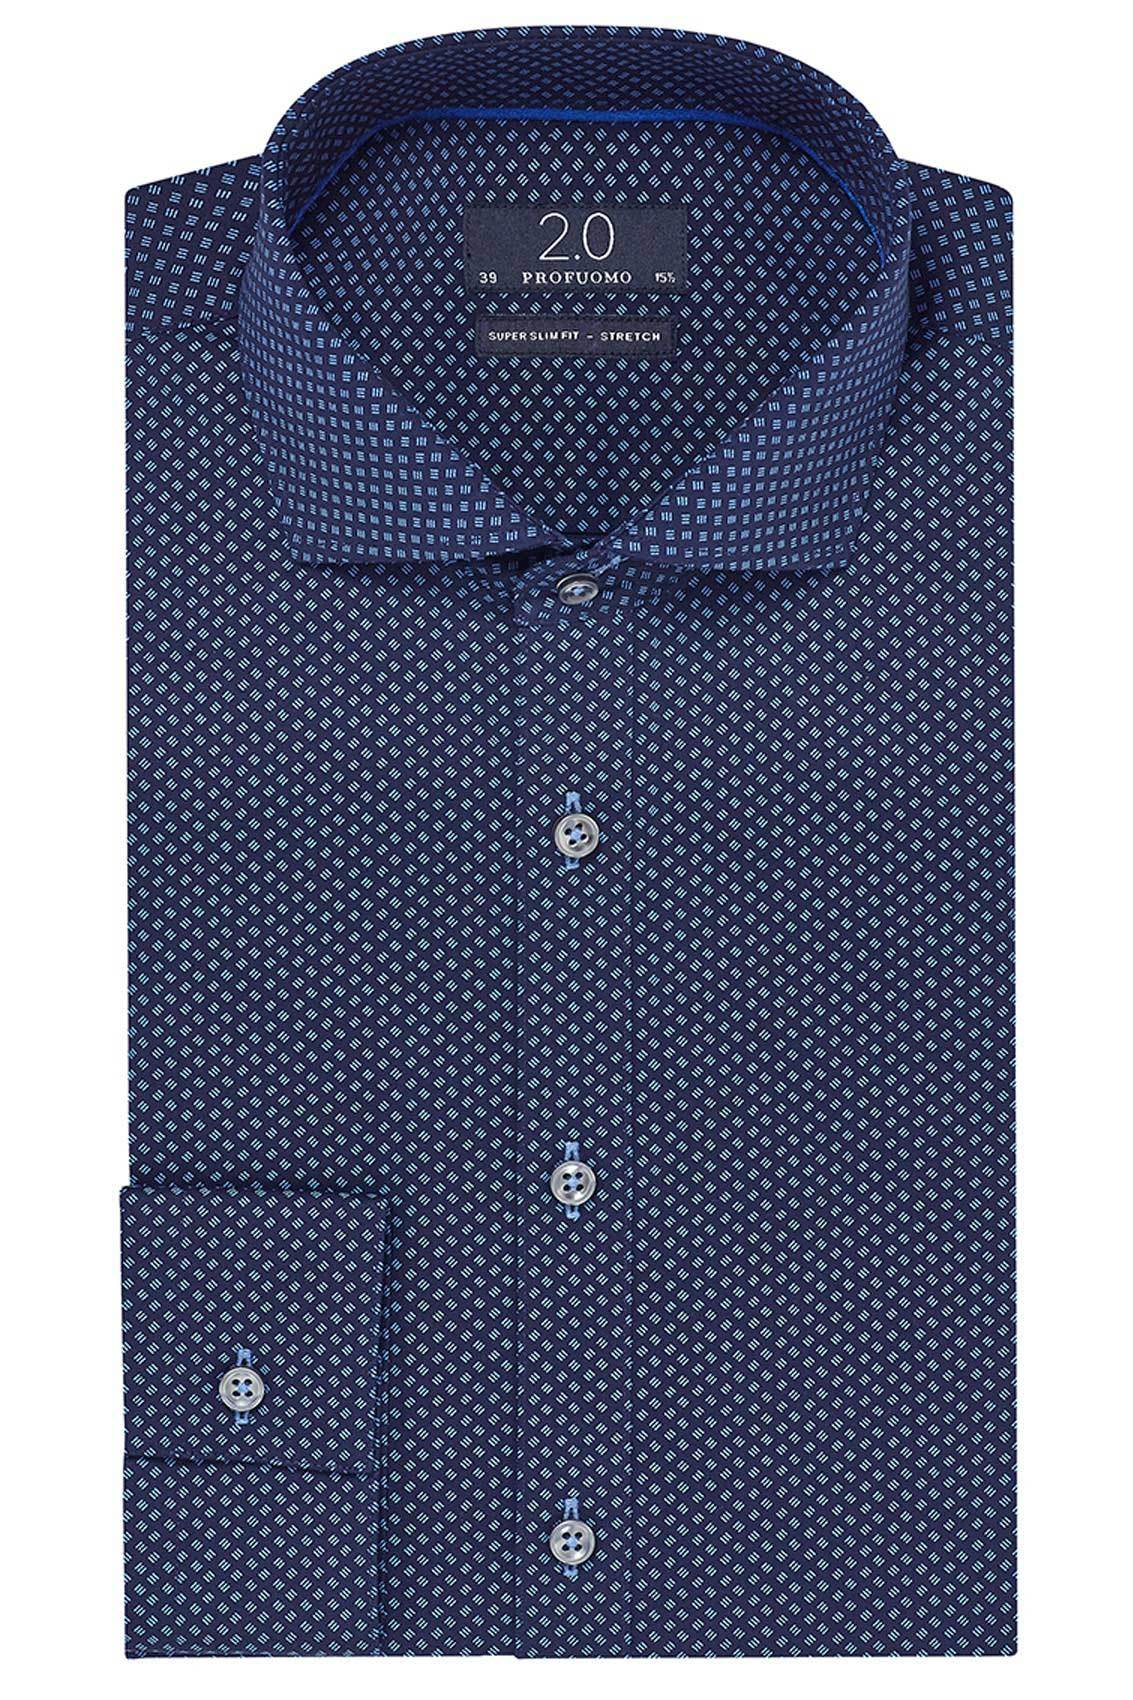 Profuomo 2.0 shirt navy print super slim fit stretch